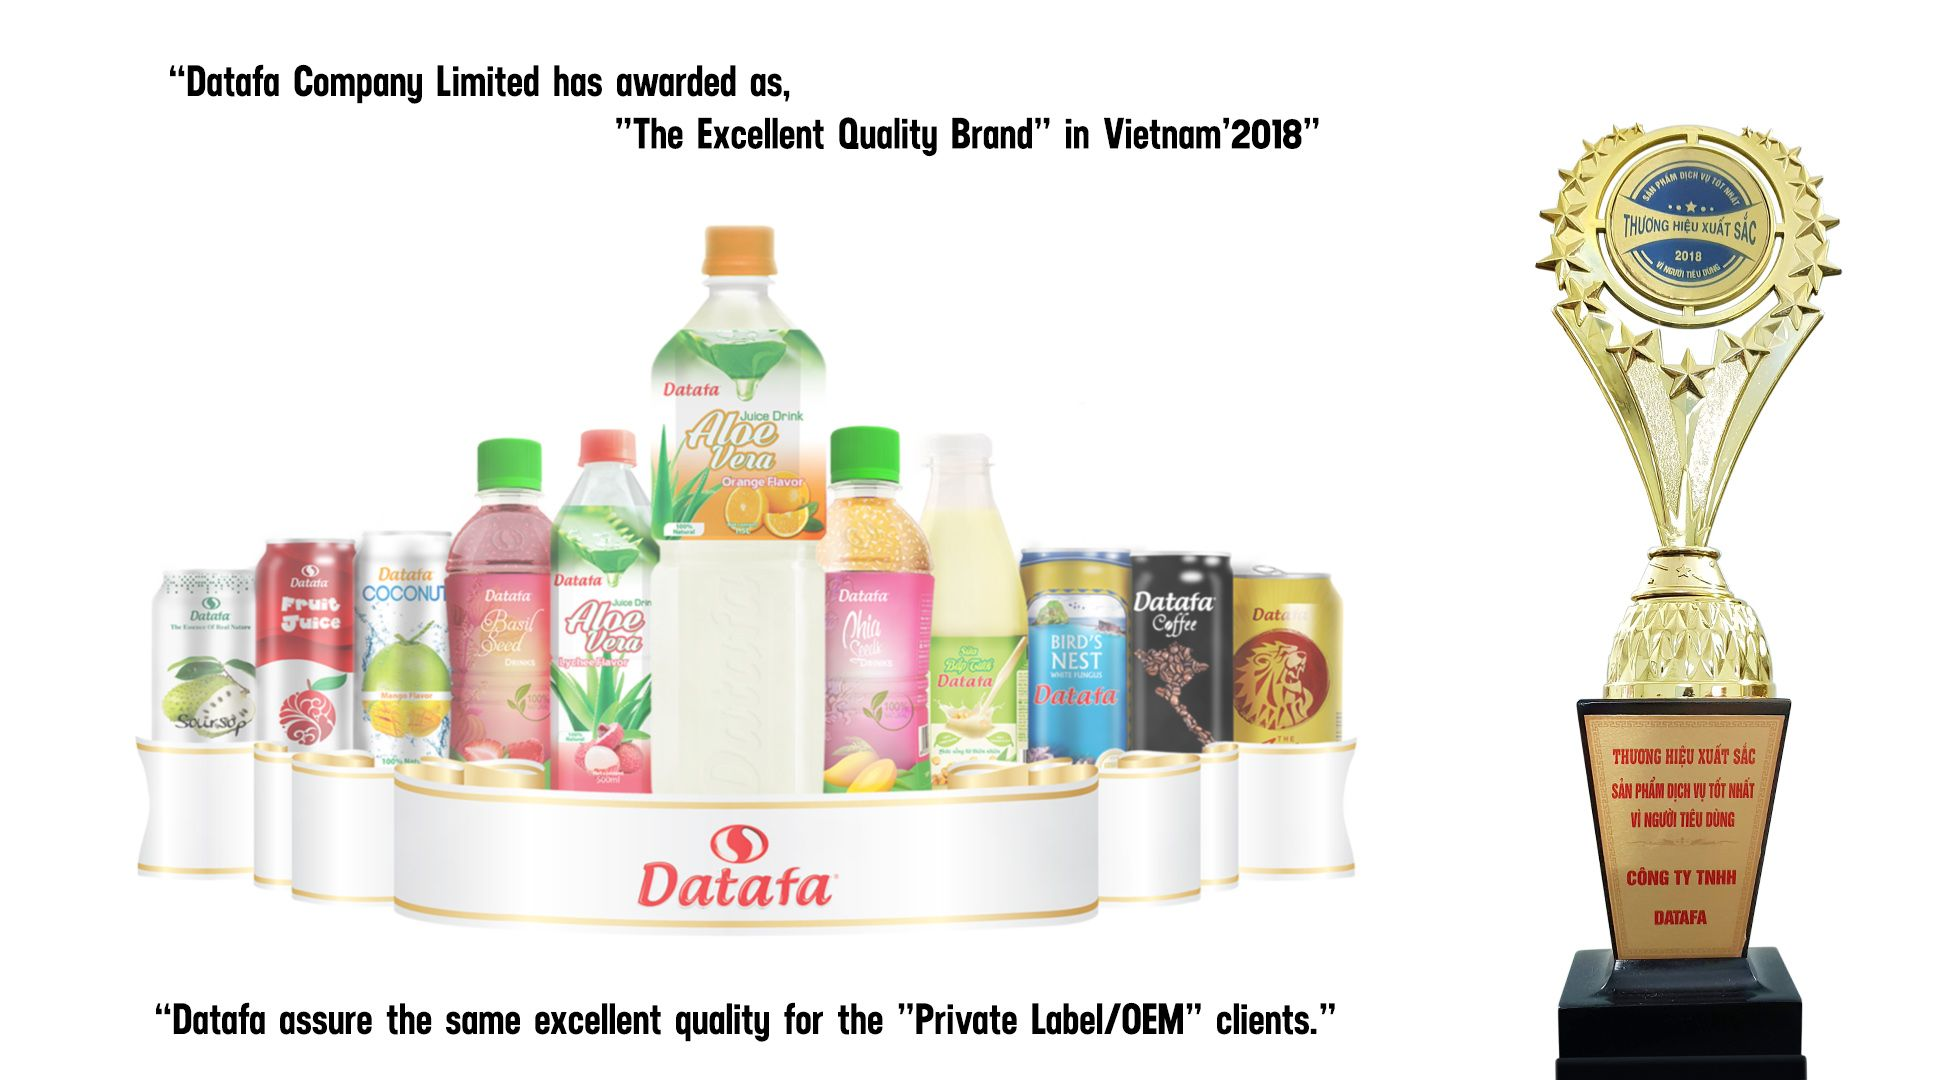 Datafa Assures The Excellent Quality Nfc Juices For Private Label Oem Clients For Business Contact Internationa Private Label Private Types Of Packaging